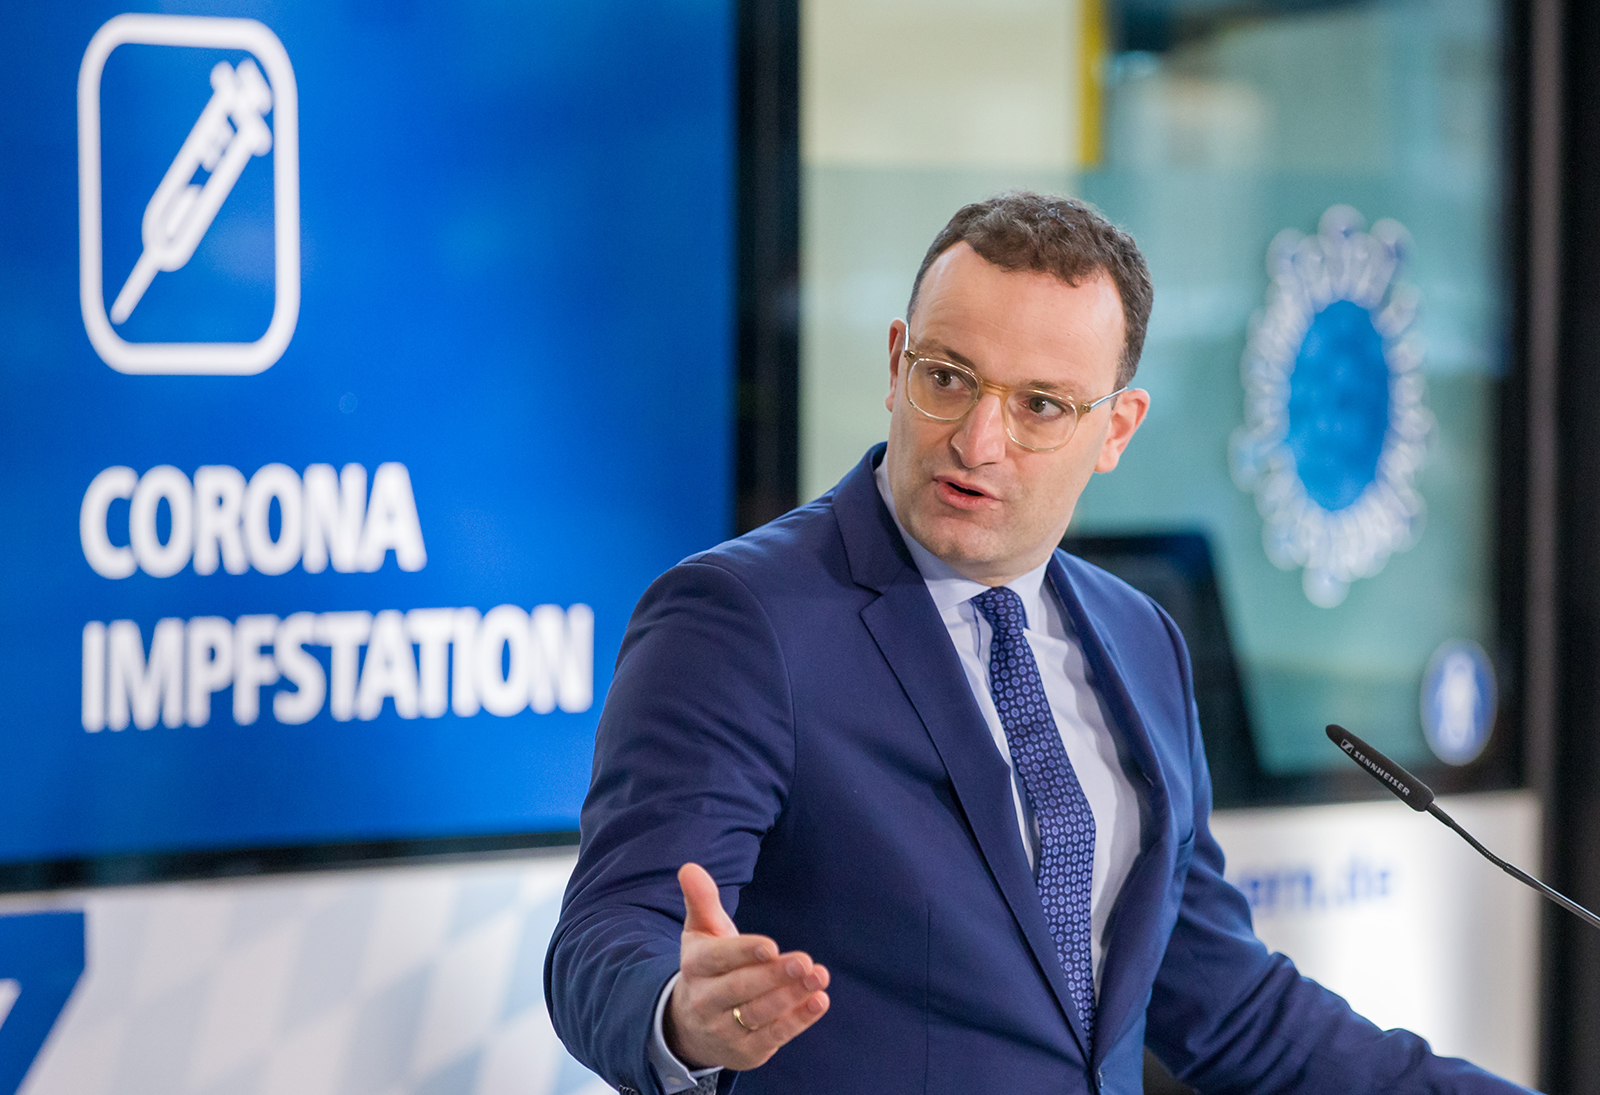 German Health Minister Jens Spahn speaks during a visit of the Corona Vaccination Center at the exhibition center in Nuremberg, Germany, on Dec. 11.